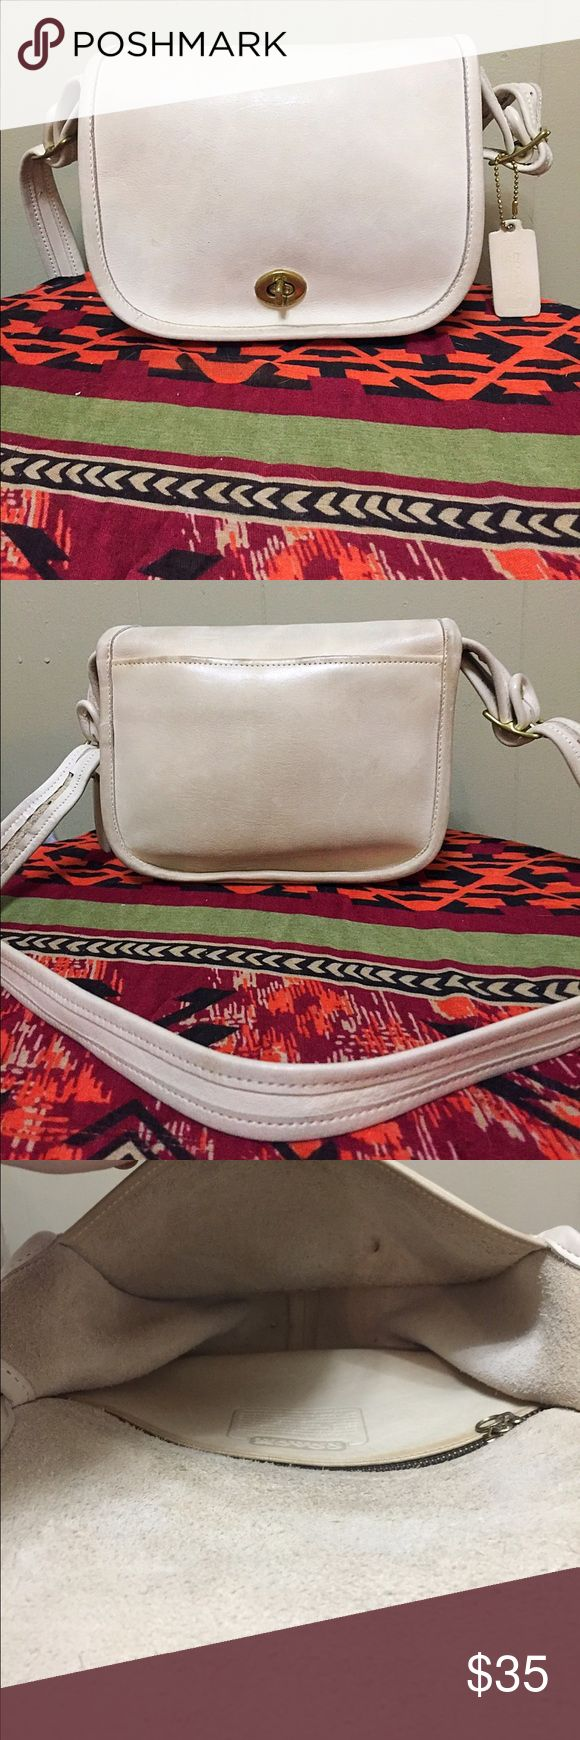 Vintage Coach Legacy Turn Lock Cream Crossbody. Vintage Coach Legacy Cream Turn Lock Crossbody. Shows some signs of wear and could use a polish. In overall great condition. Two interior pockets. Height 7.5 inches. Width 8.5 inches. Coach Bags Crossbody Bags